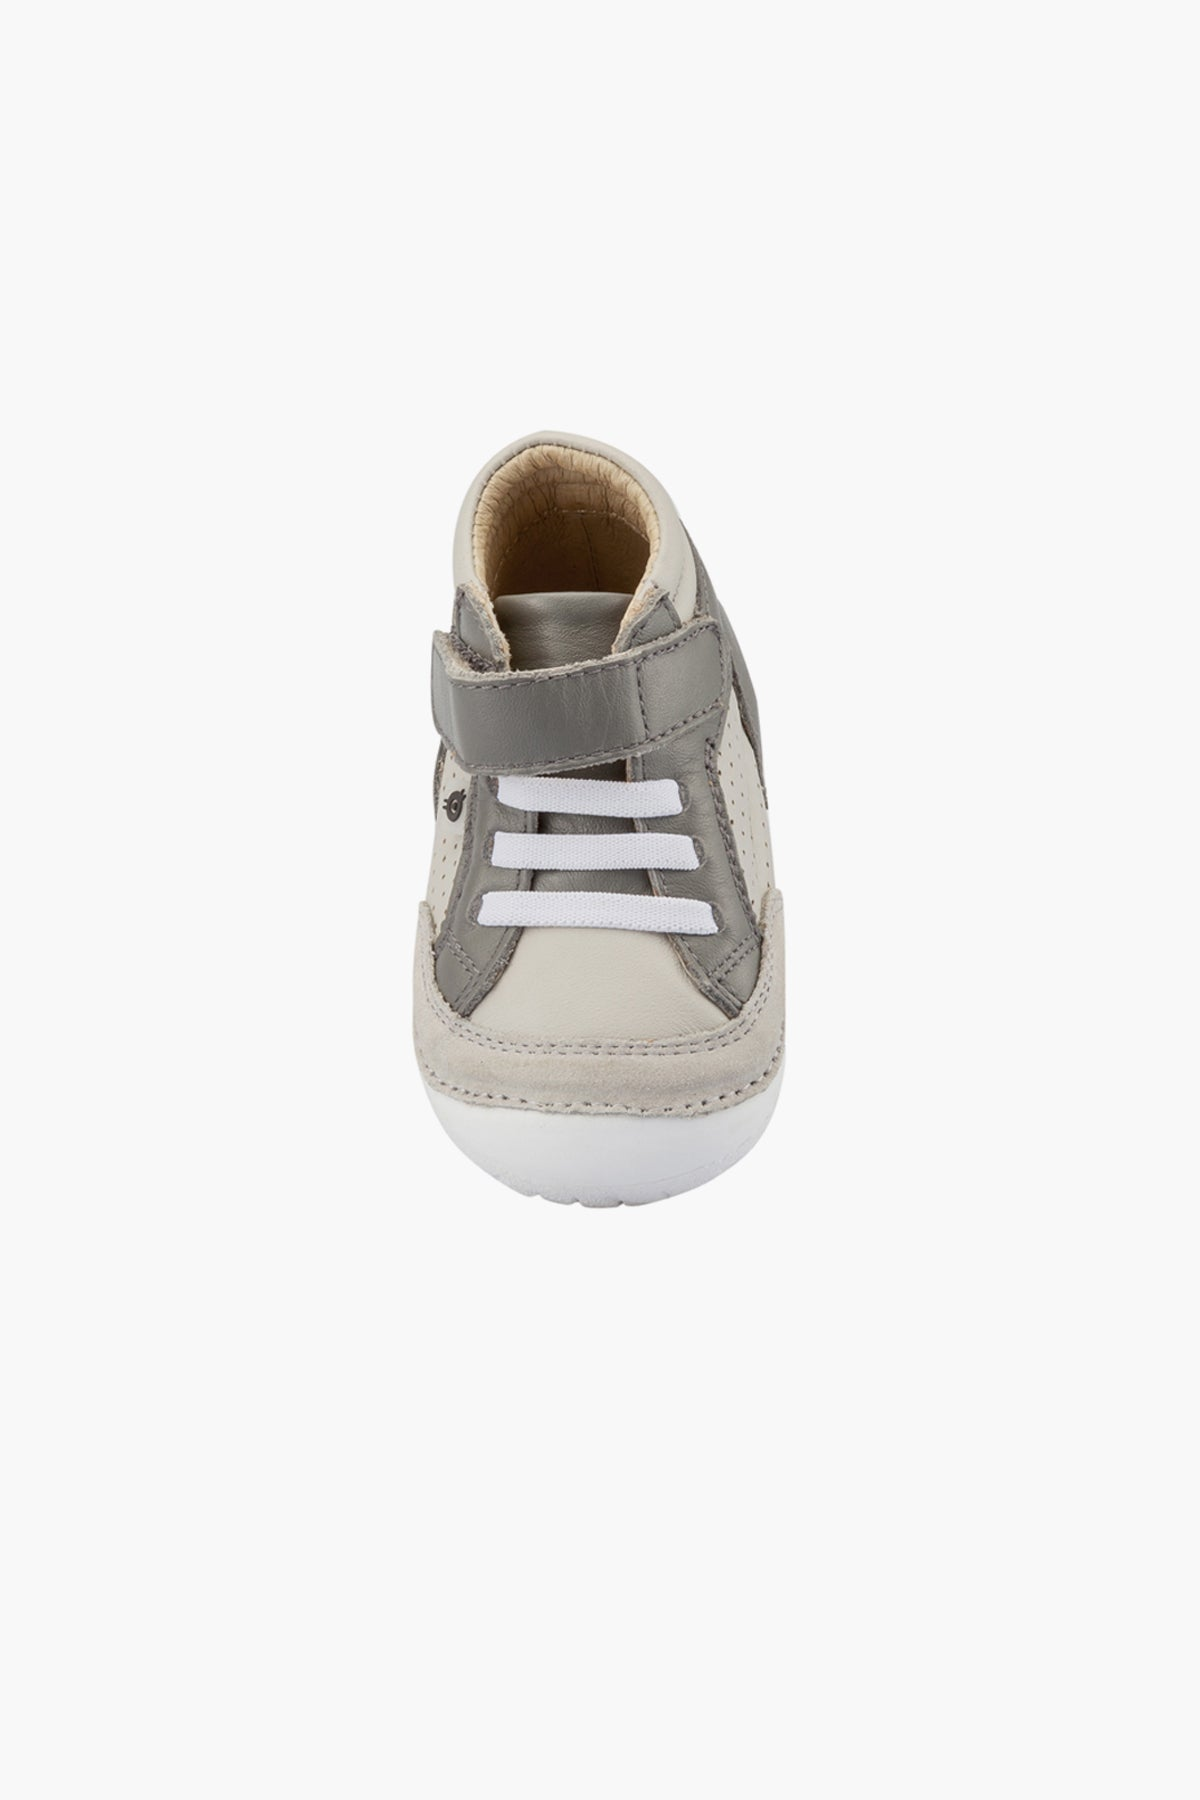 Old Soles Retro Pave Toddler Shoes